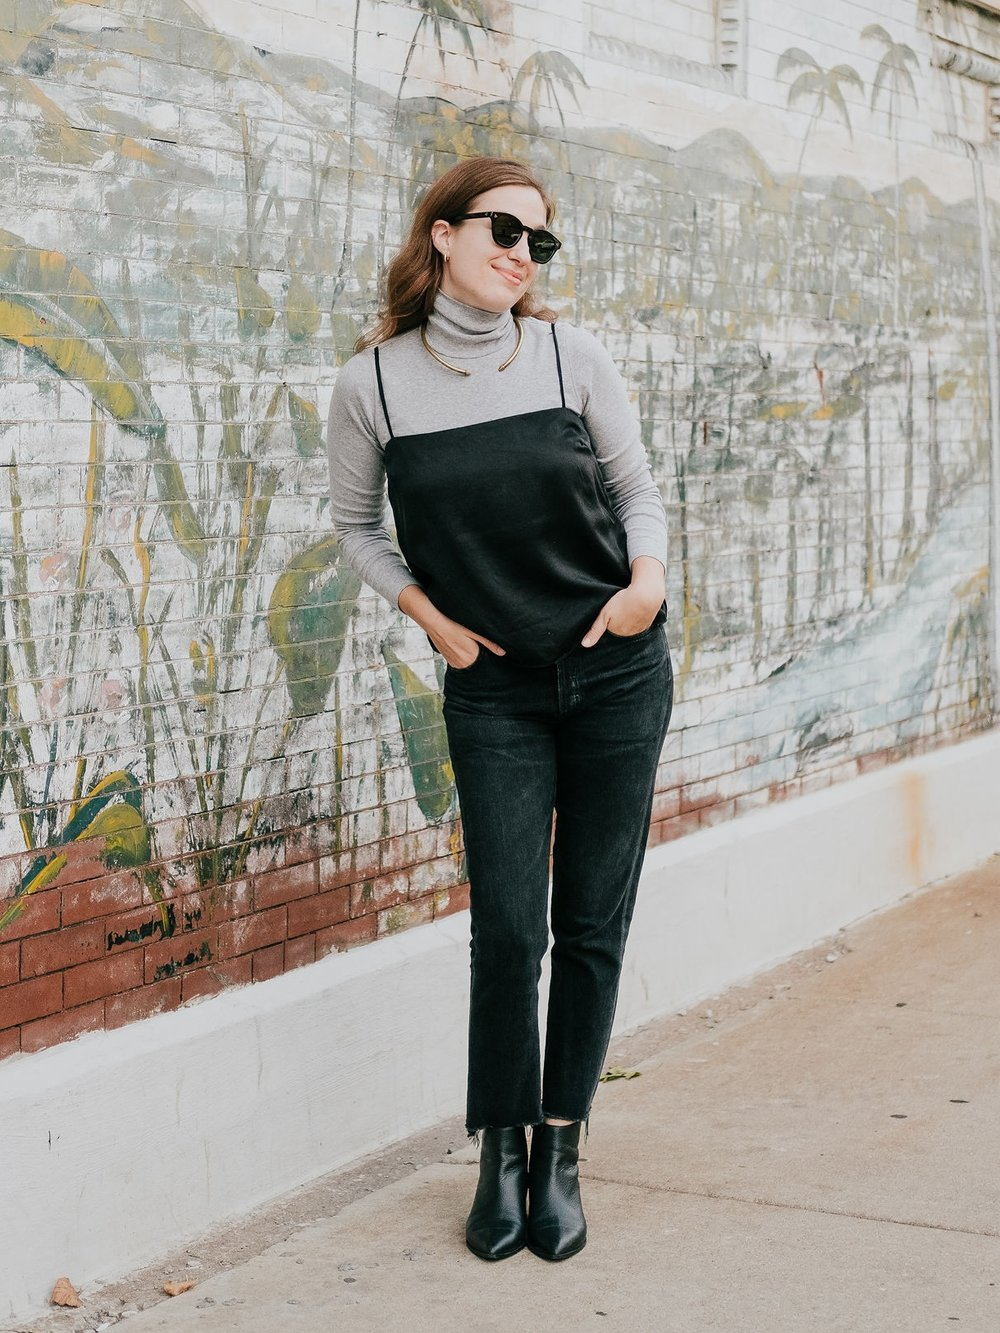 Silk tank and turtleneck layering - A Week Of Ethical Outfits With Heart With Carly Gerber From Hippie + Heart on The Good Trade